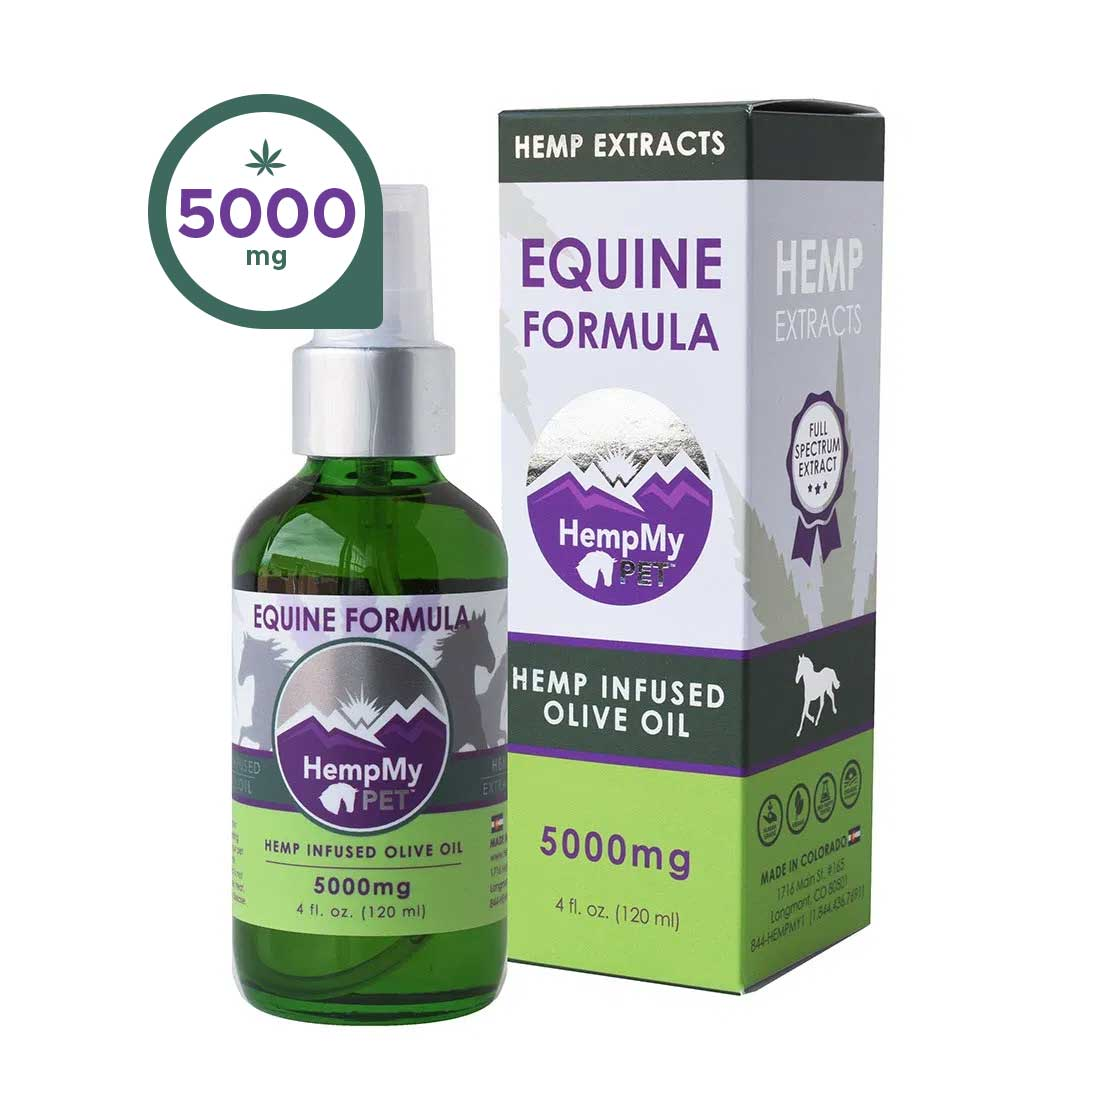 Hemp Infused Olive Oil for Horses - 5000mg CBD, CBG, CBC ea (4 fl oz bottle)